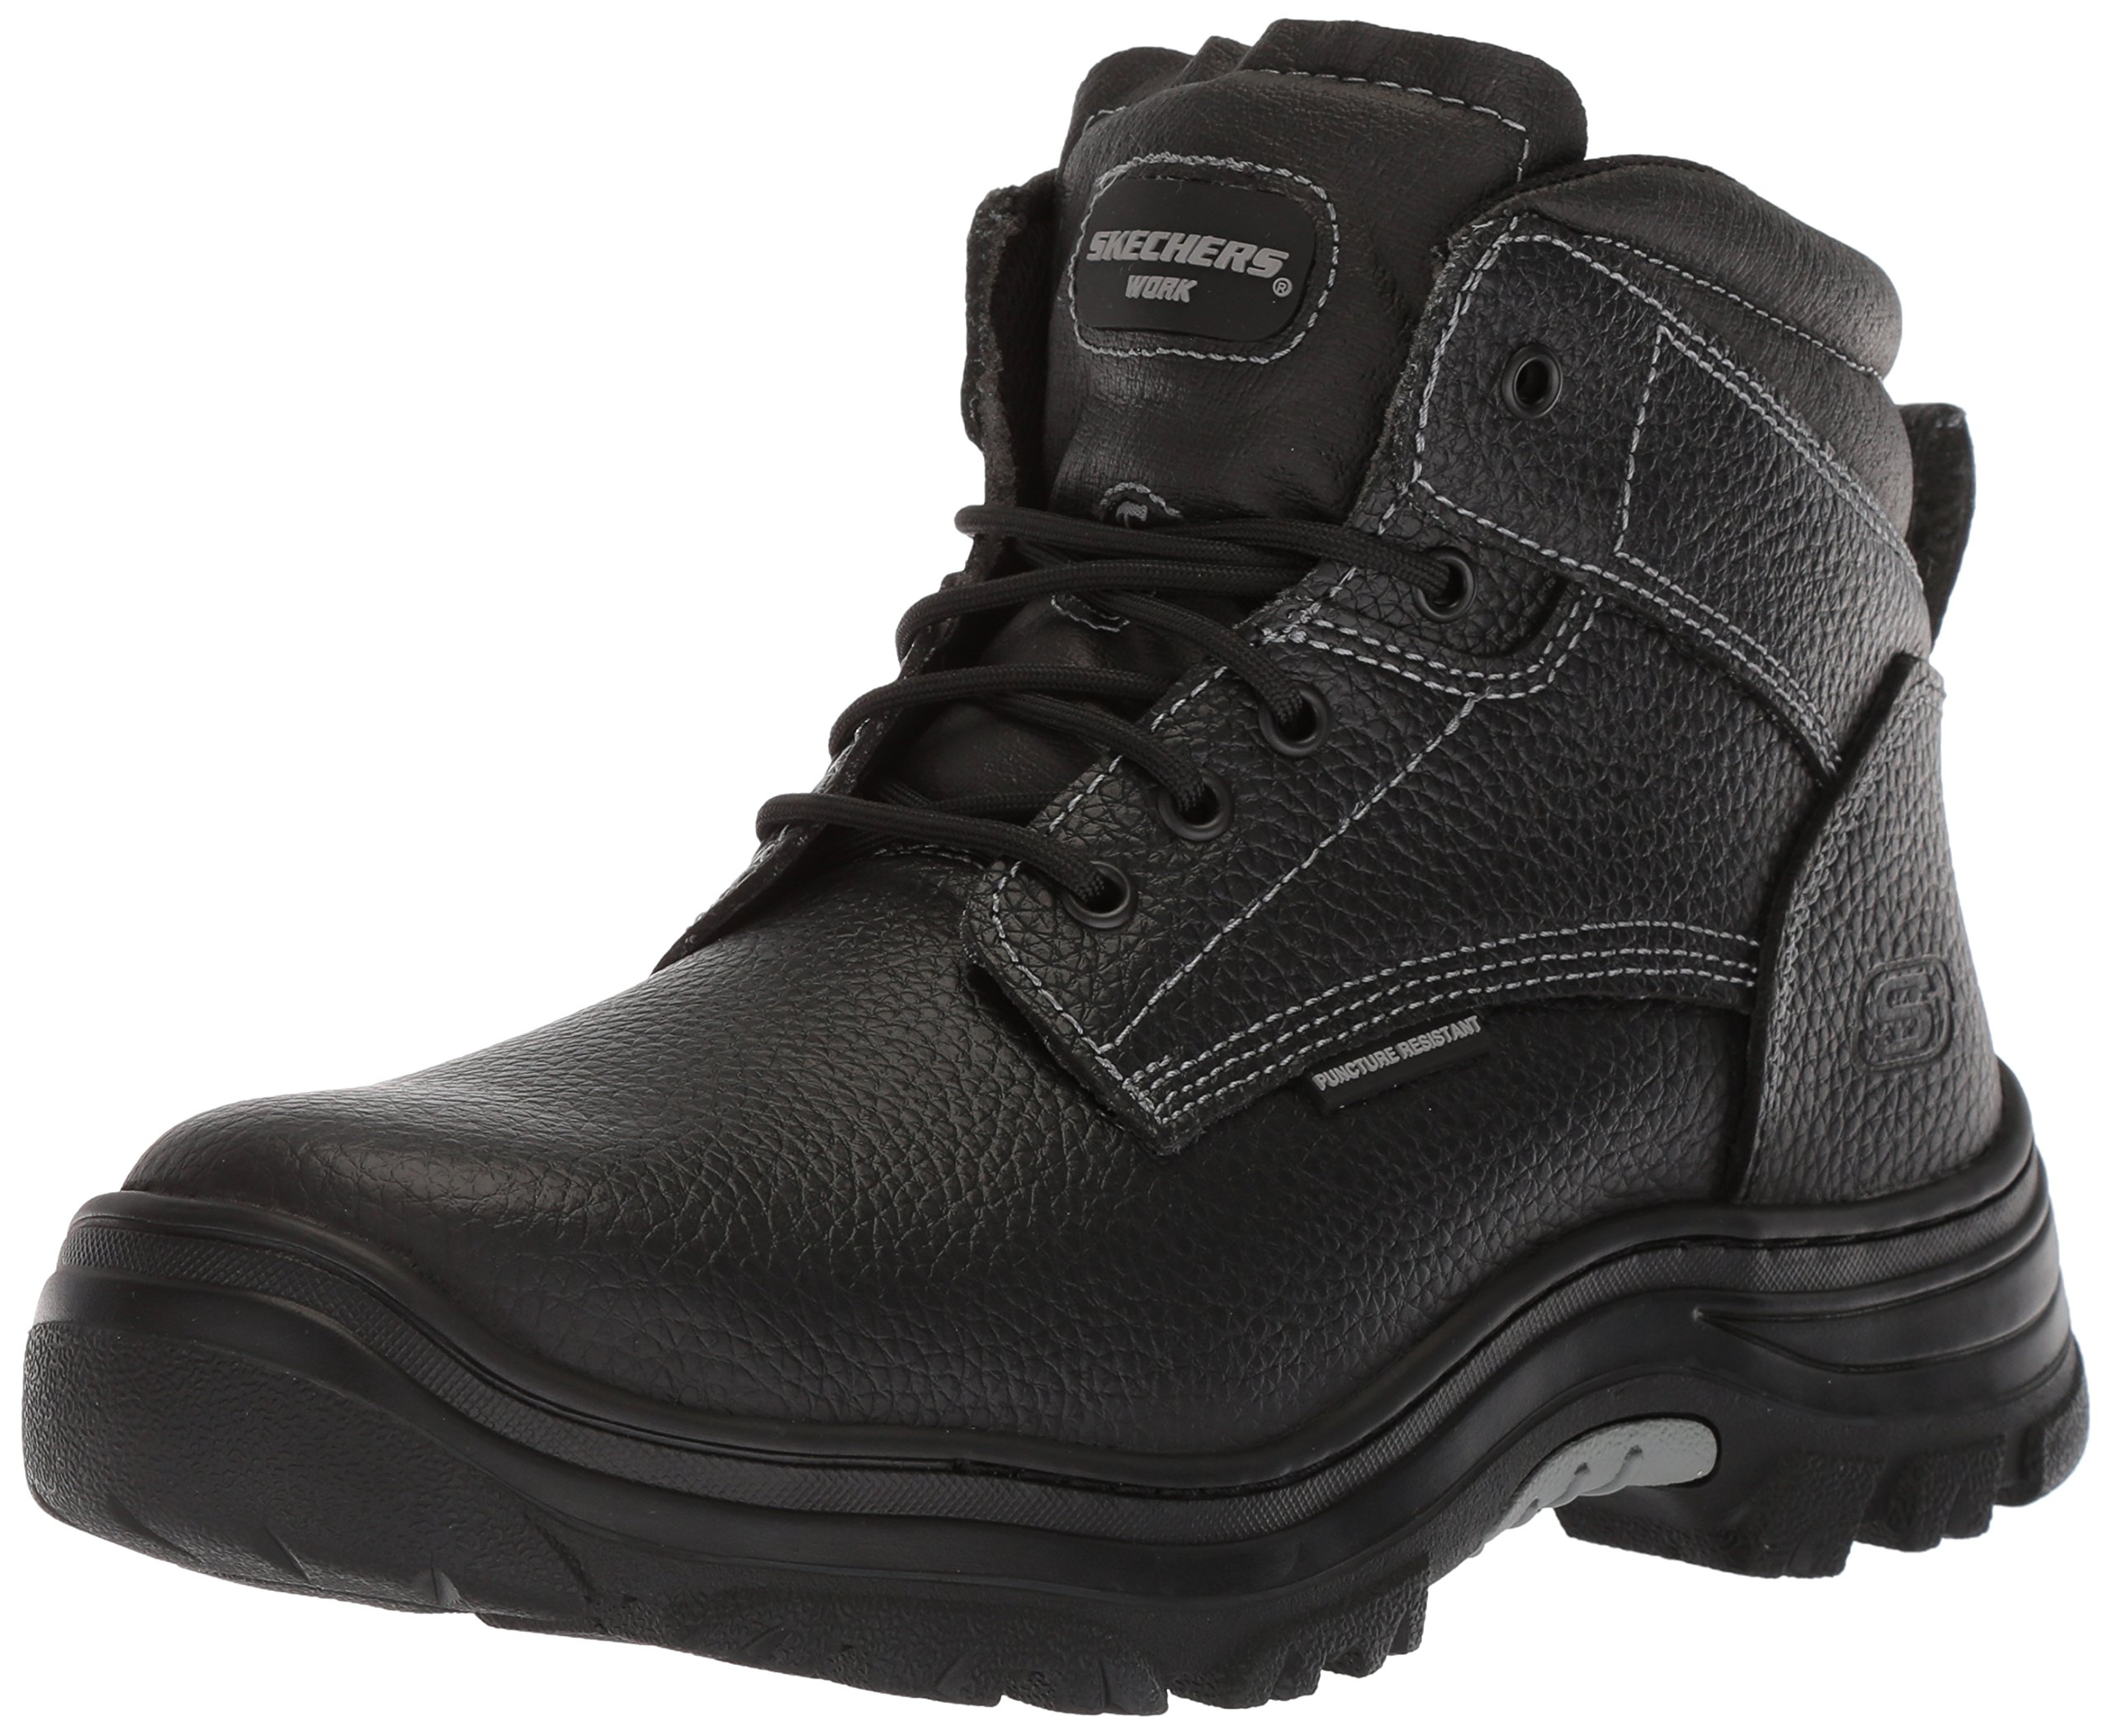 Skechers Work Men's Burgin-Tarlac Industrial Boot,Black Embossed Leather,10.5 M US